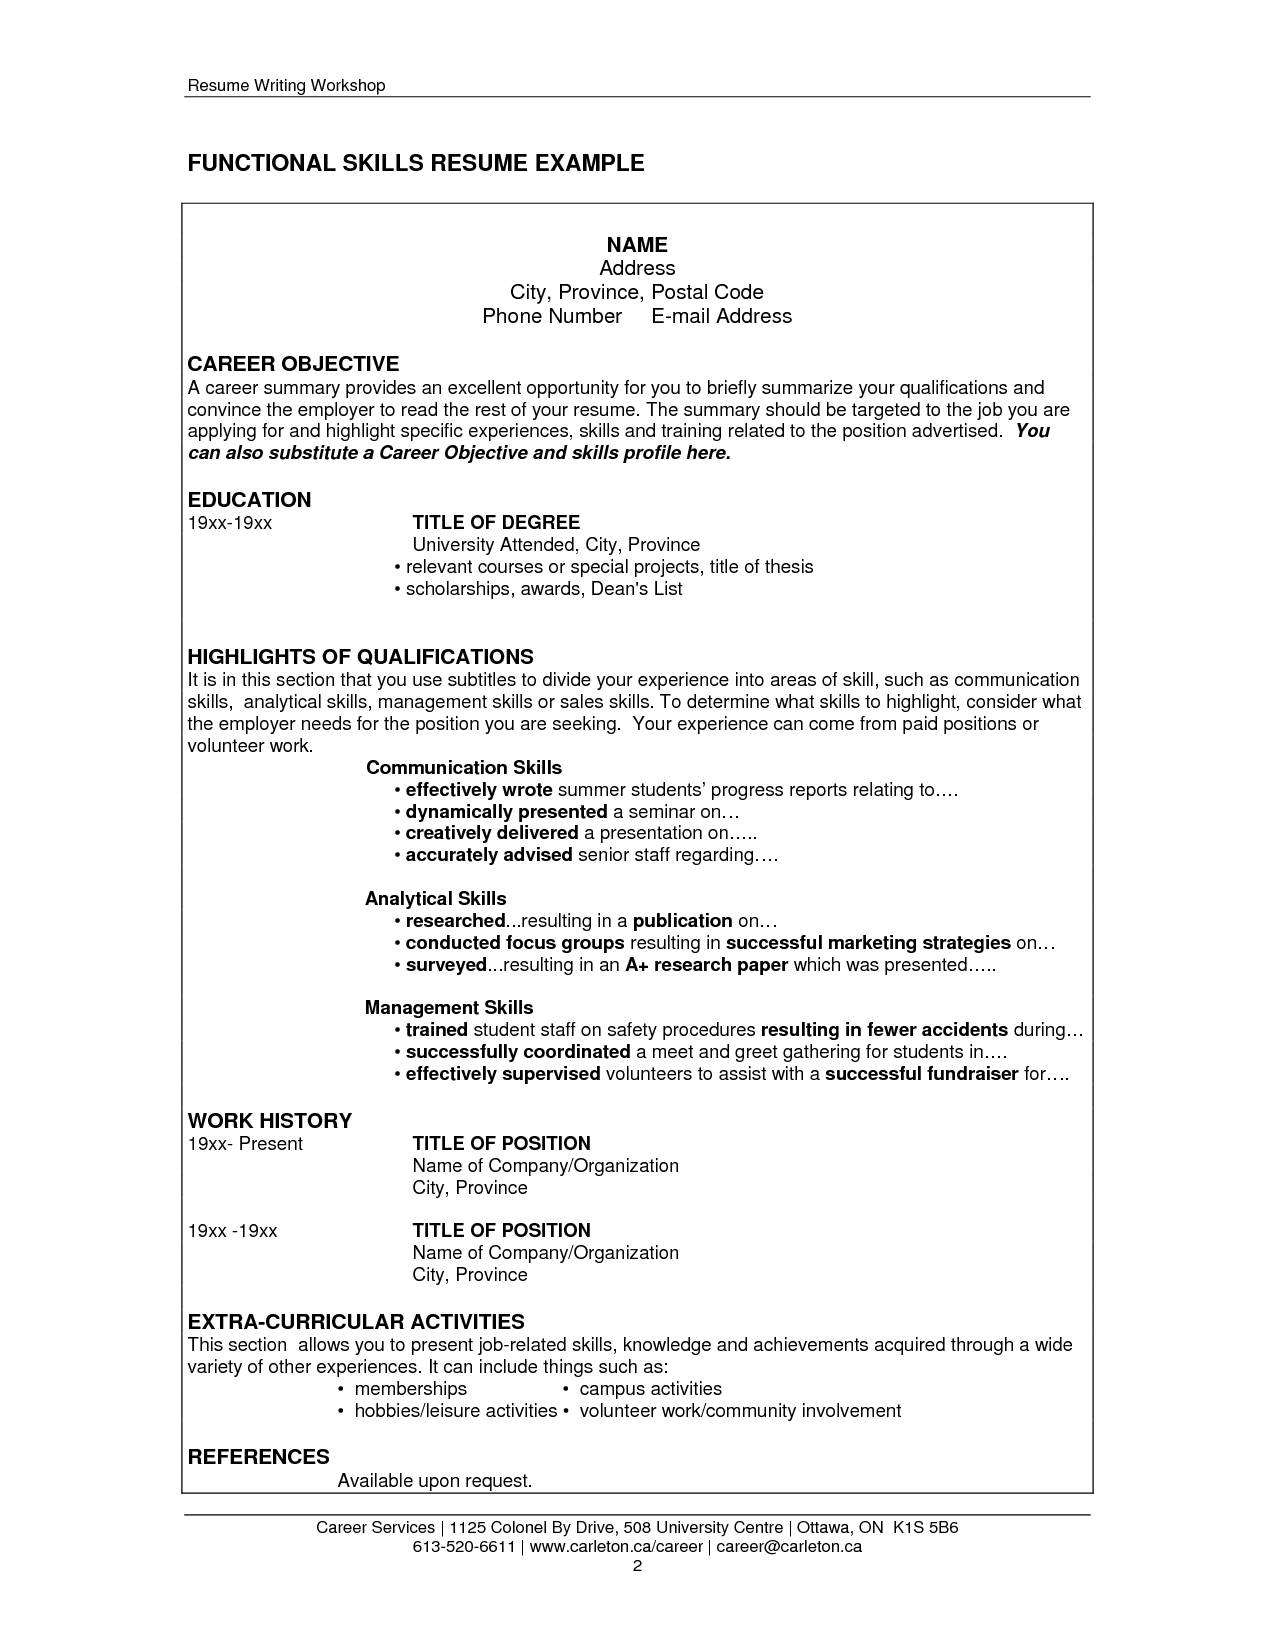 Resume Sample Of Skills And Abilities Resume Sample Of Skills And